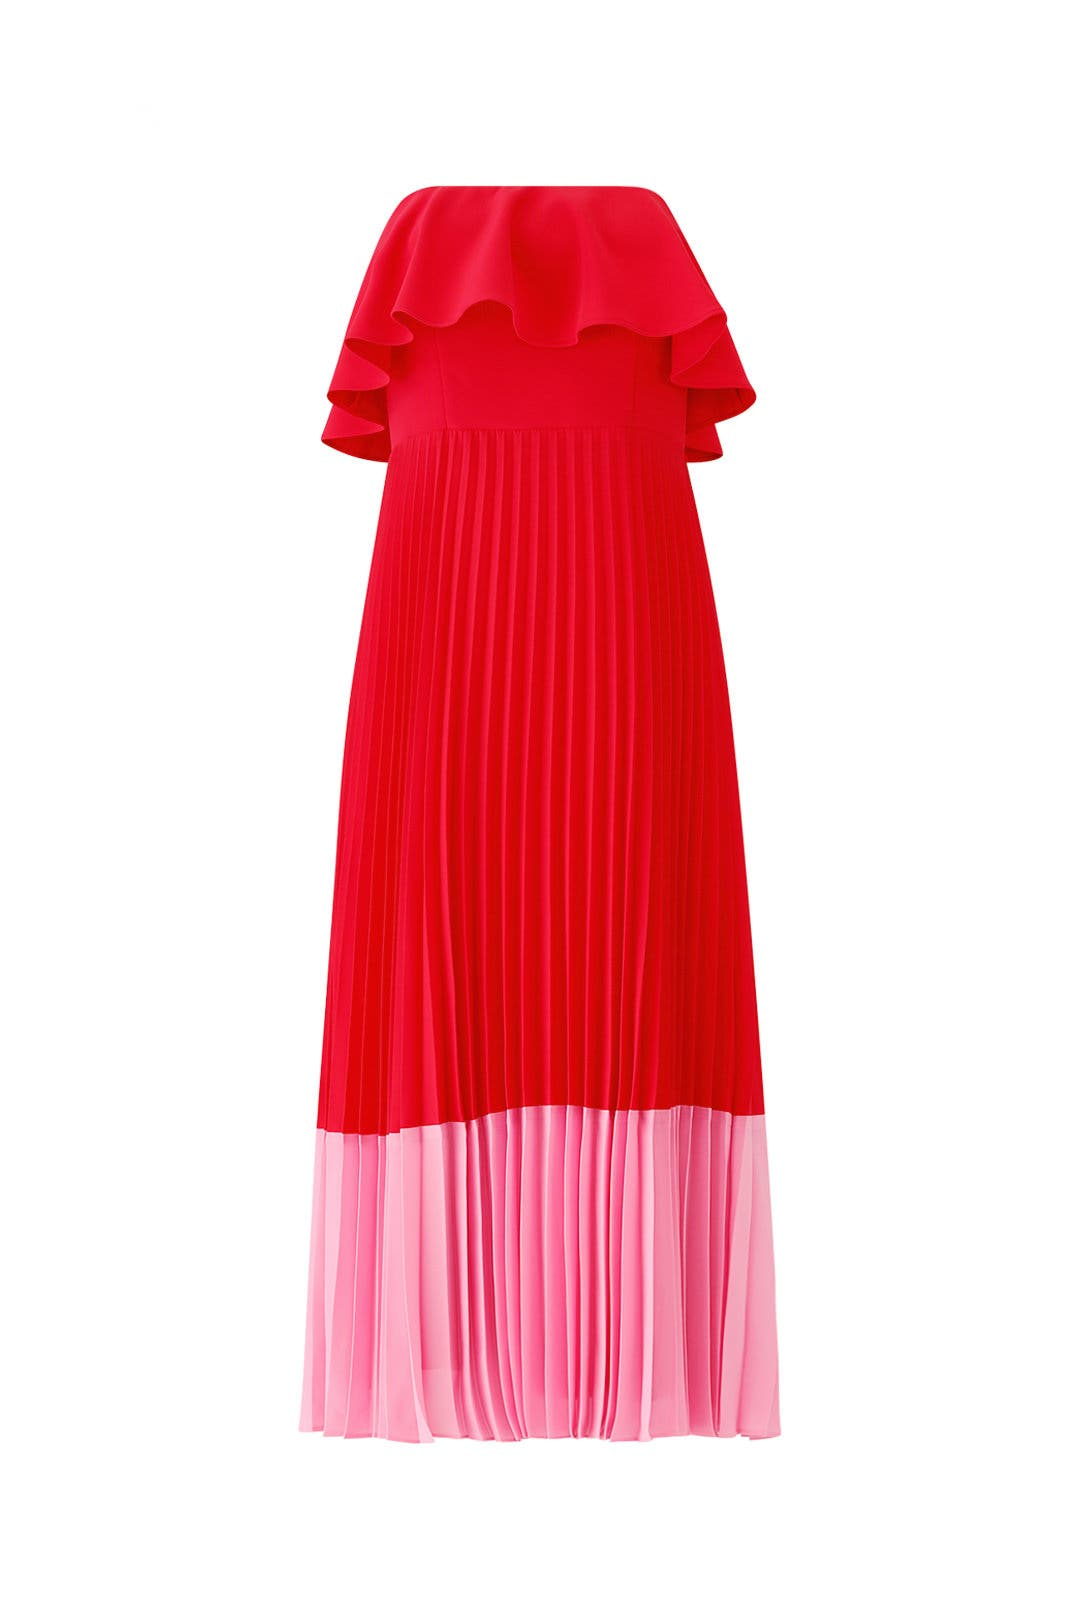 Red Pleated Tea Dress by Aidan Mattox for $40 - $50 | Rent the Runway